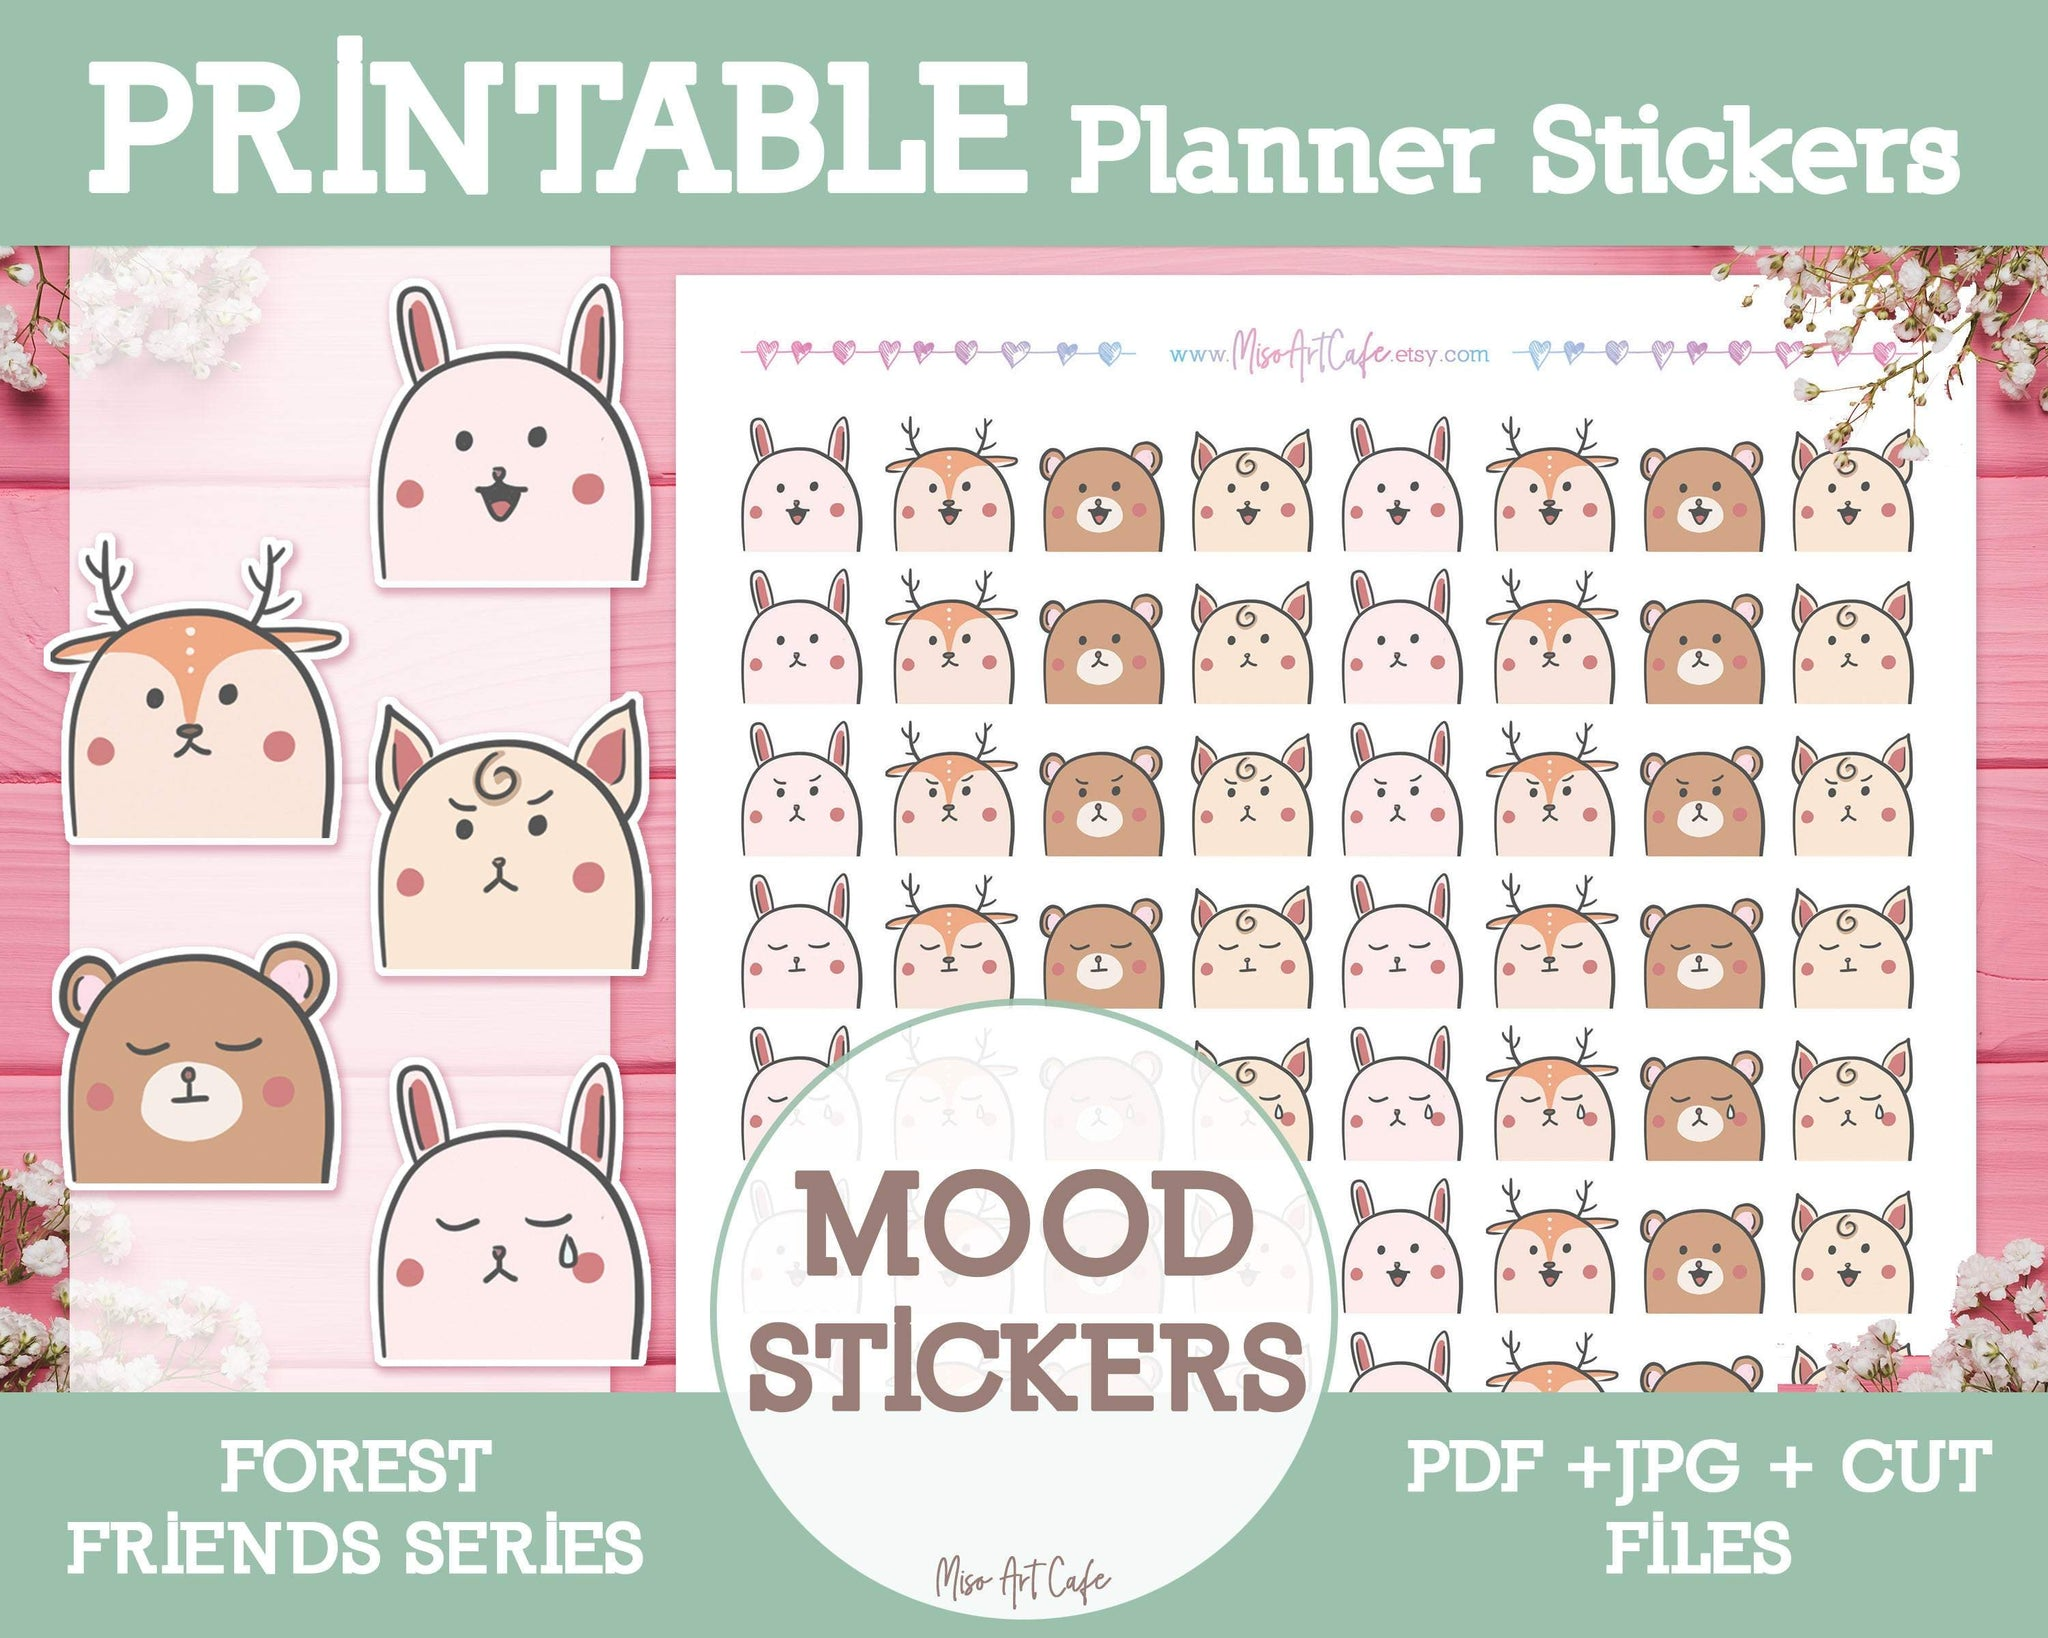 Printable Mood Stickers - Forest Friends Planner Stickers - Miso Art Cafe